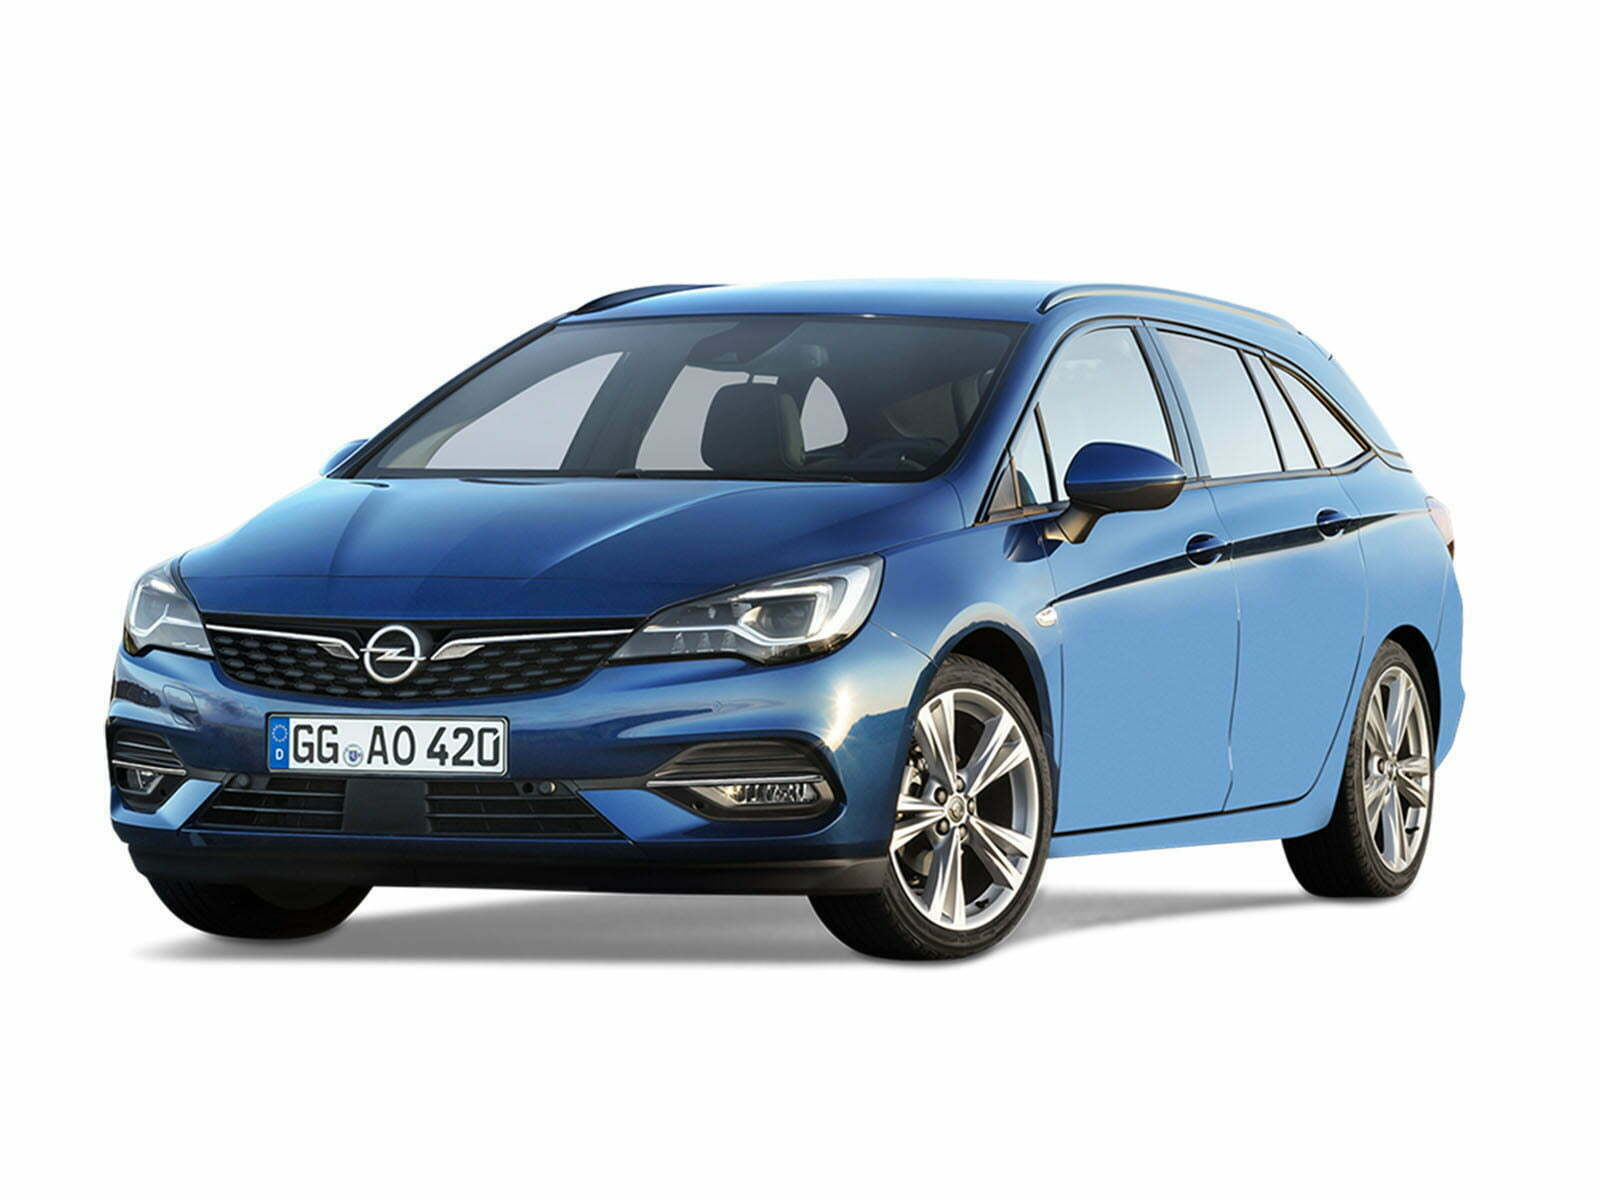 Opel Astra Sports Tourer 1.2 Turbo 81kW/110pk Business Edition 5d